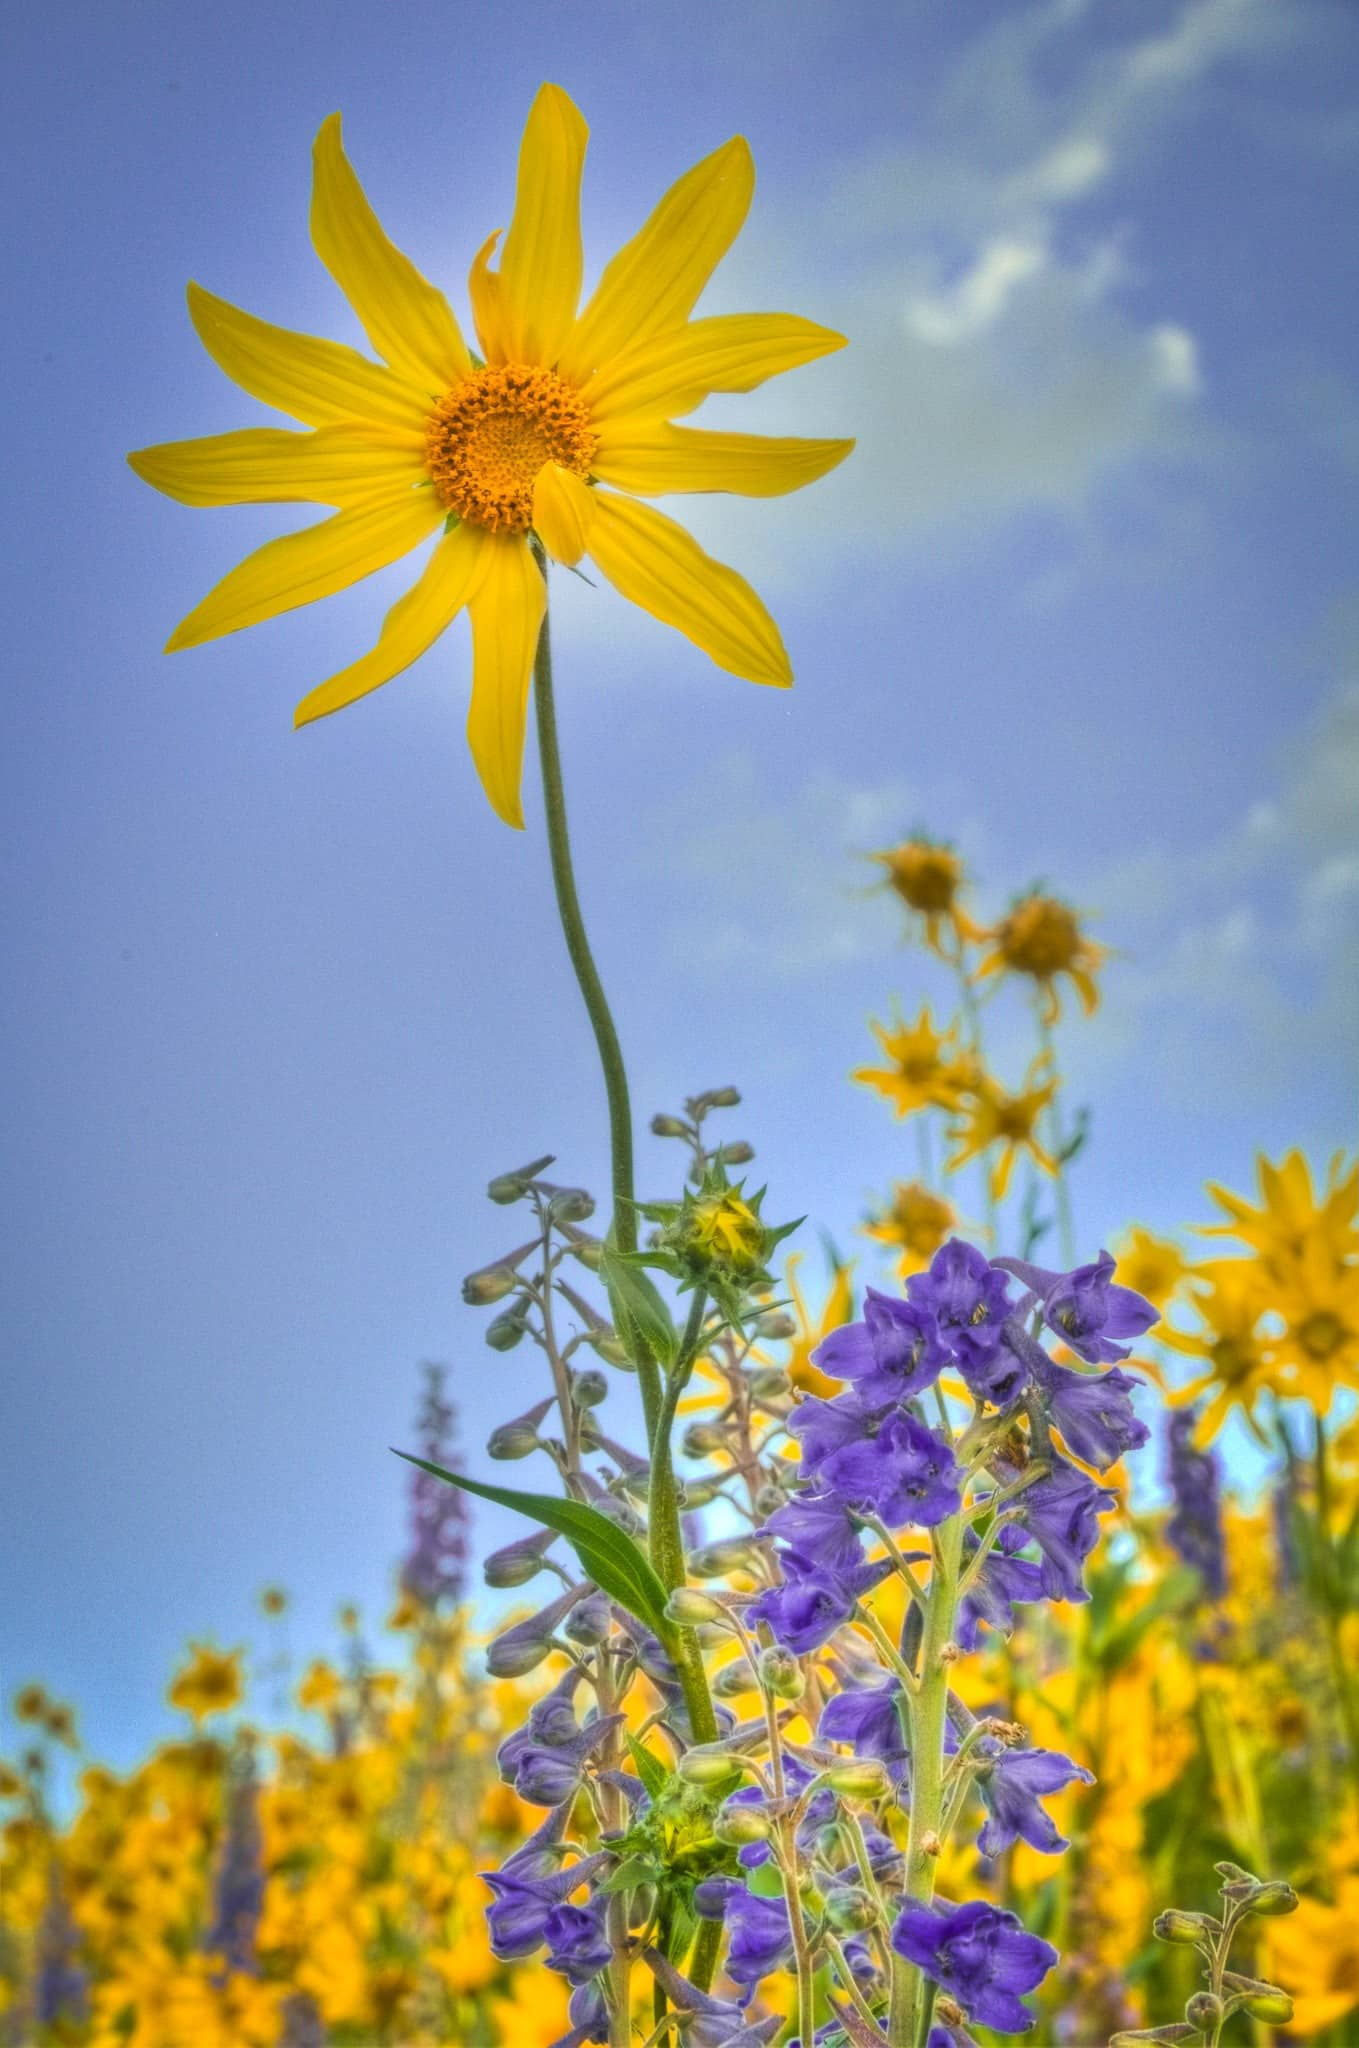 An Aspen Sunflower grows in a fields of Mule's Ears, sunflowers and larkspur along the Brush Creek Road southeast of Mt. Crested Butte, Colorado.